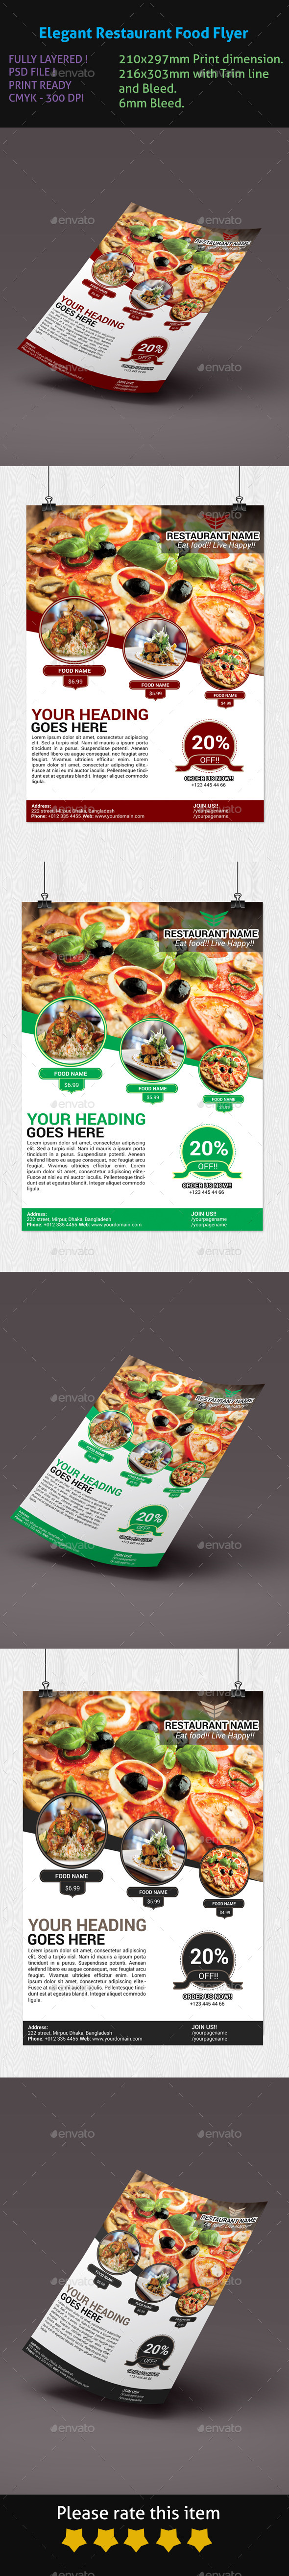 GraphicRiver Elegant Restaurant Food Flyer 9901937